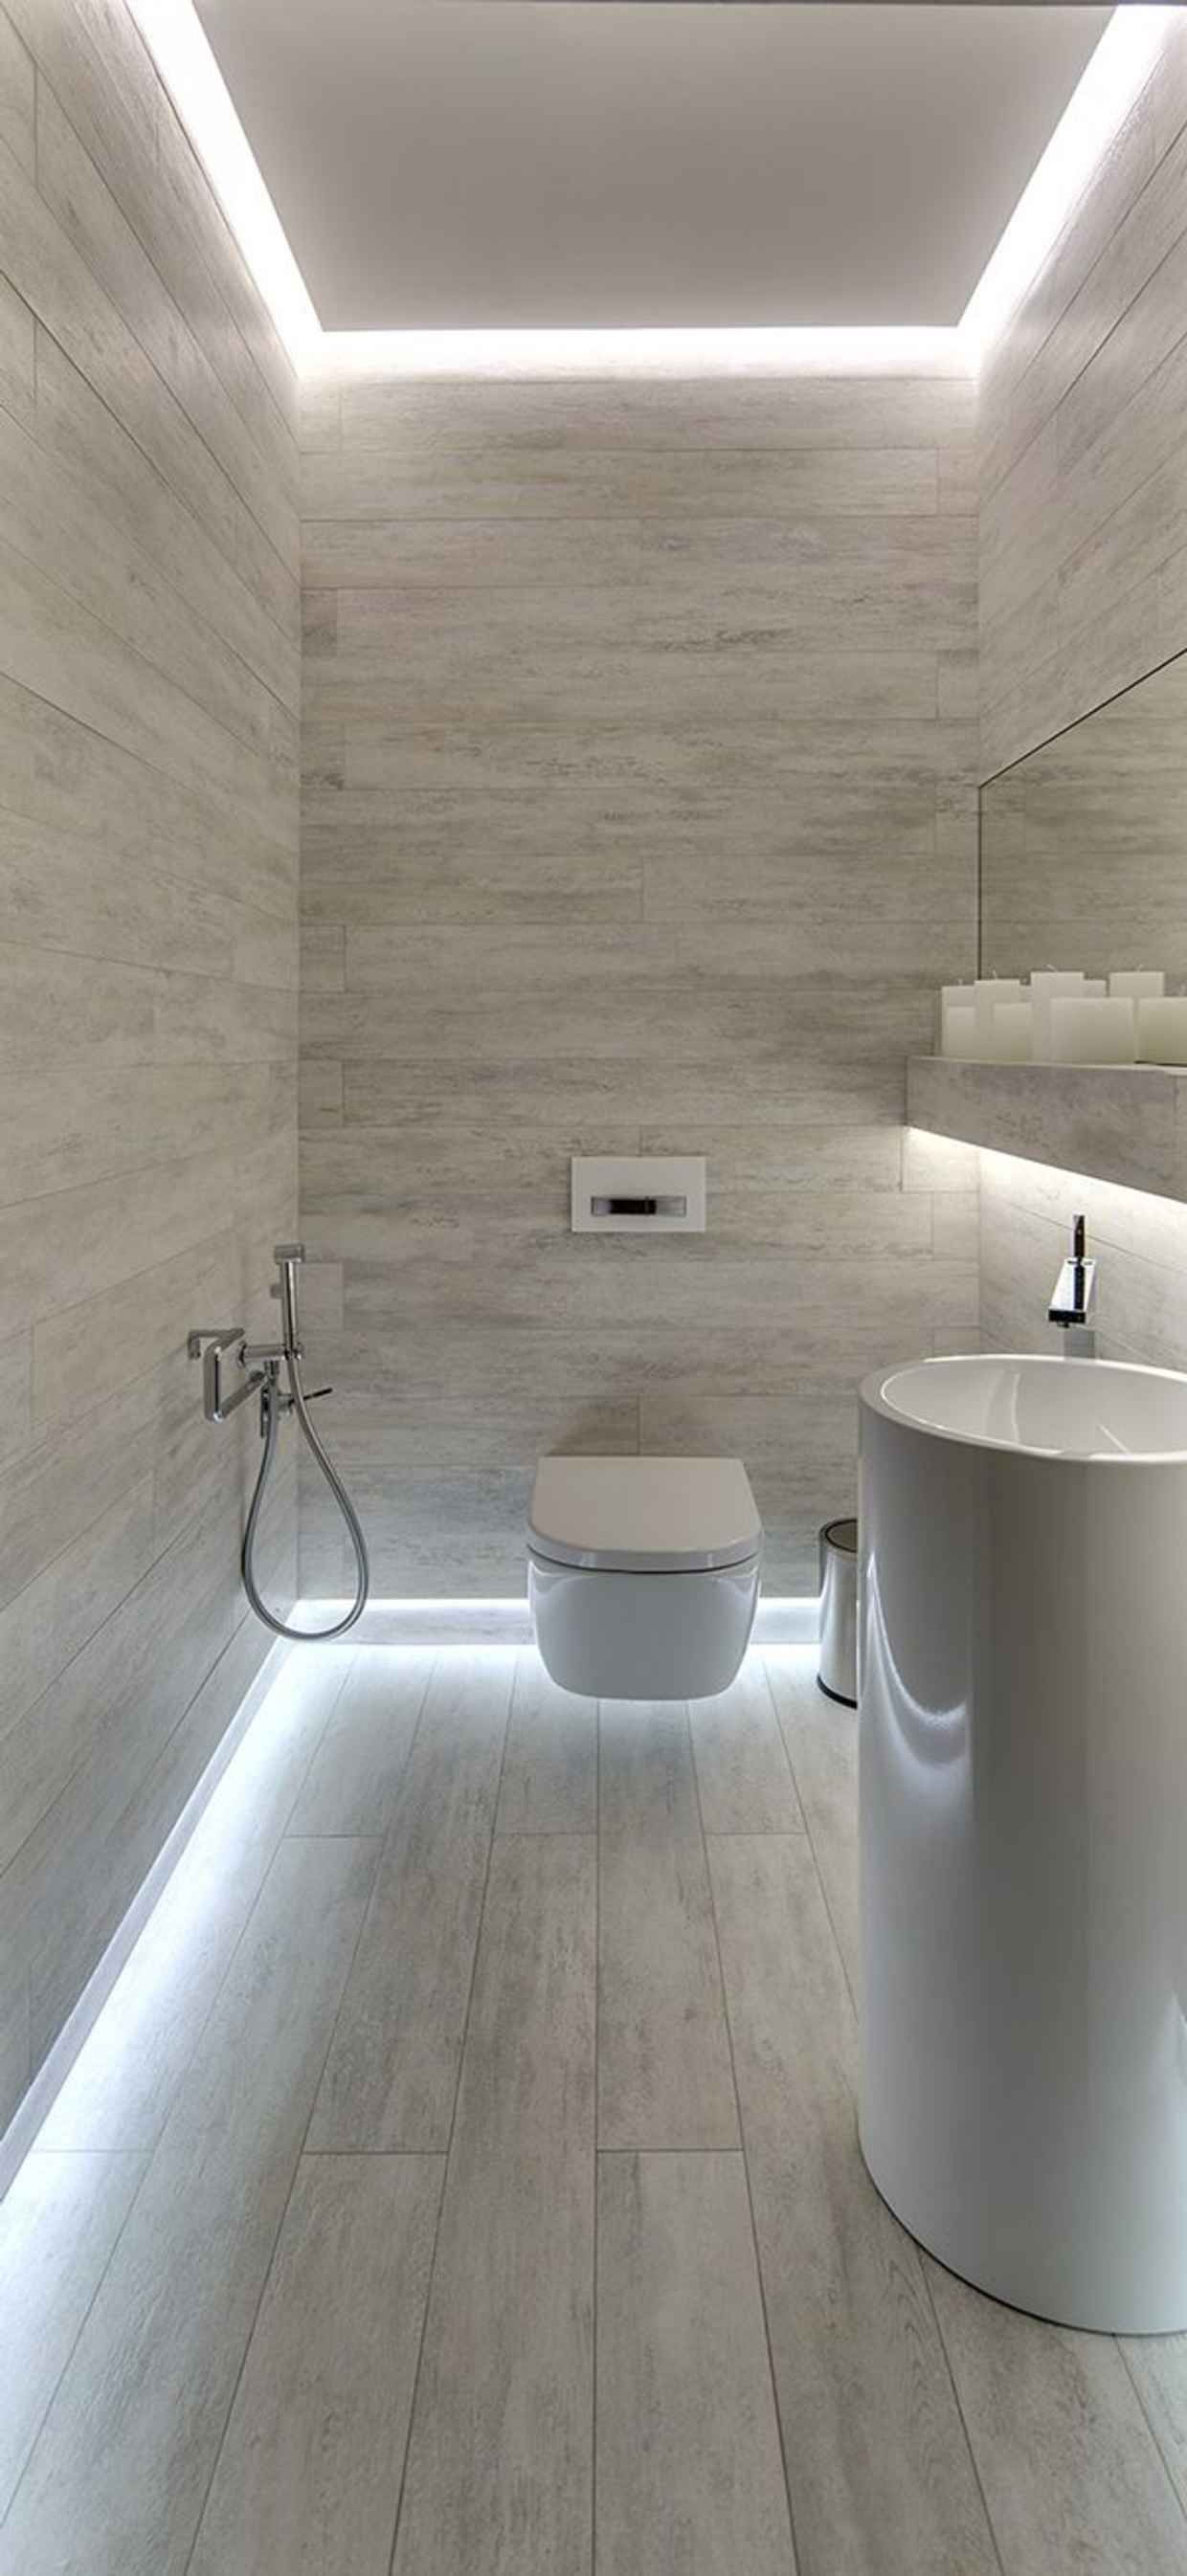 Deckenleisten Badezimmer 30 Examples Of Minimal Interior Design 13 Bad Bathroom